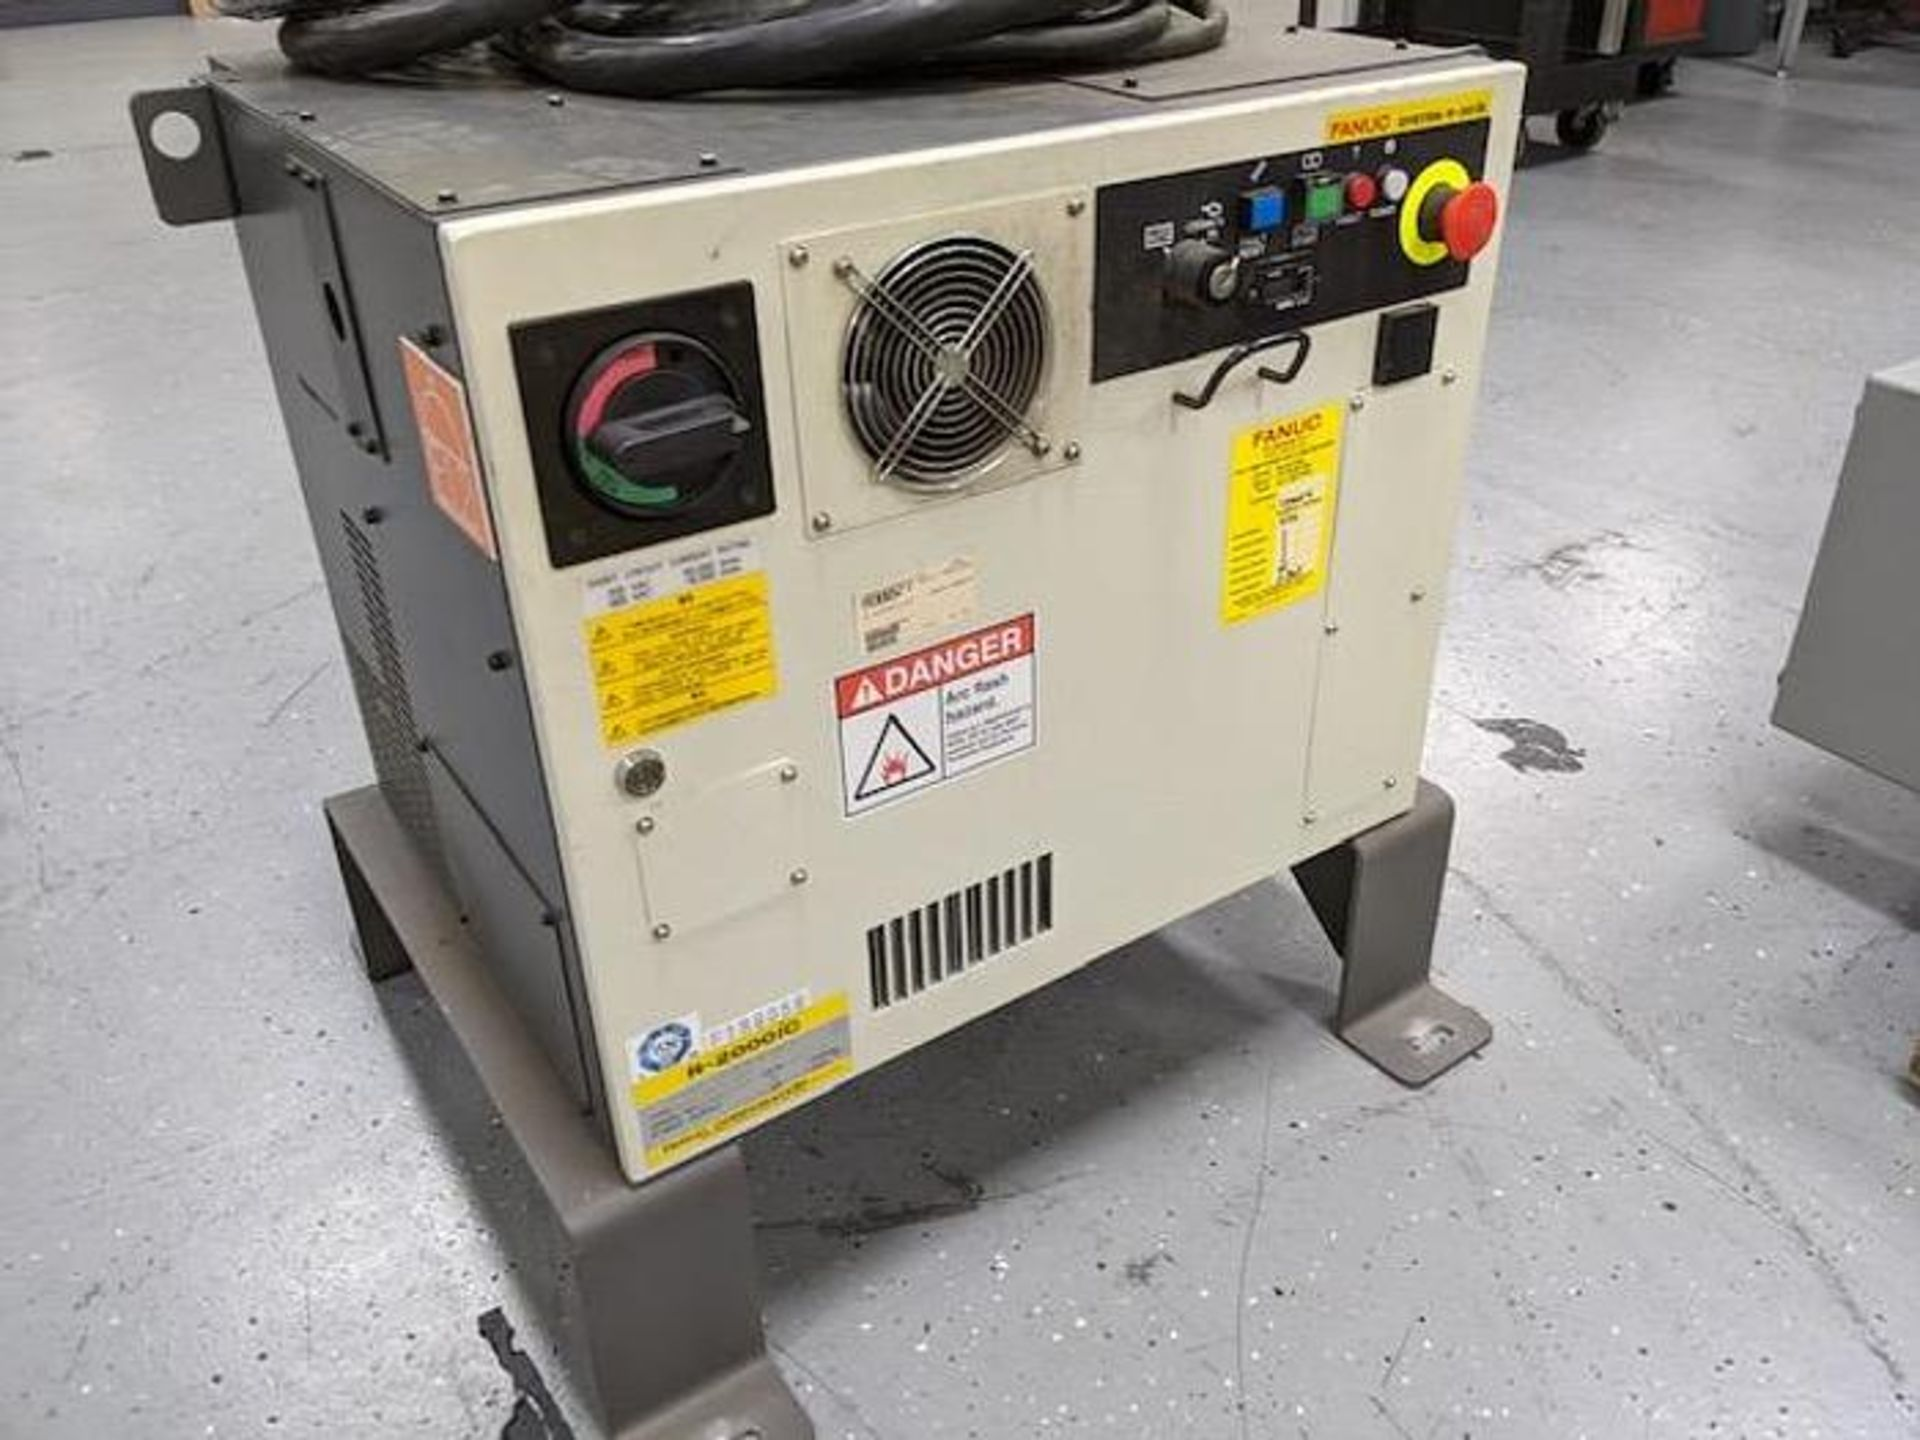 FANUC R2000iC/125L 6 AXIS CNC ROBOT WITH R30iB CONTROLLER, IR VISION, CABLES & REACH - Image 12 of 17